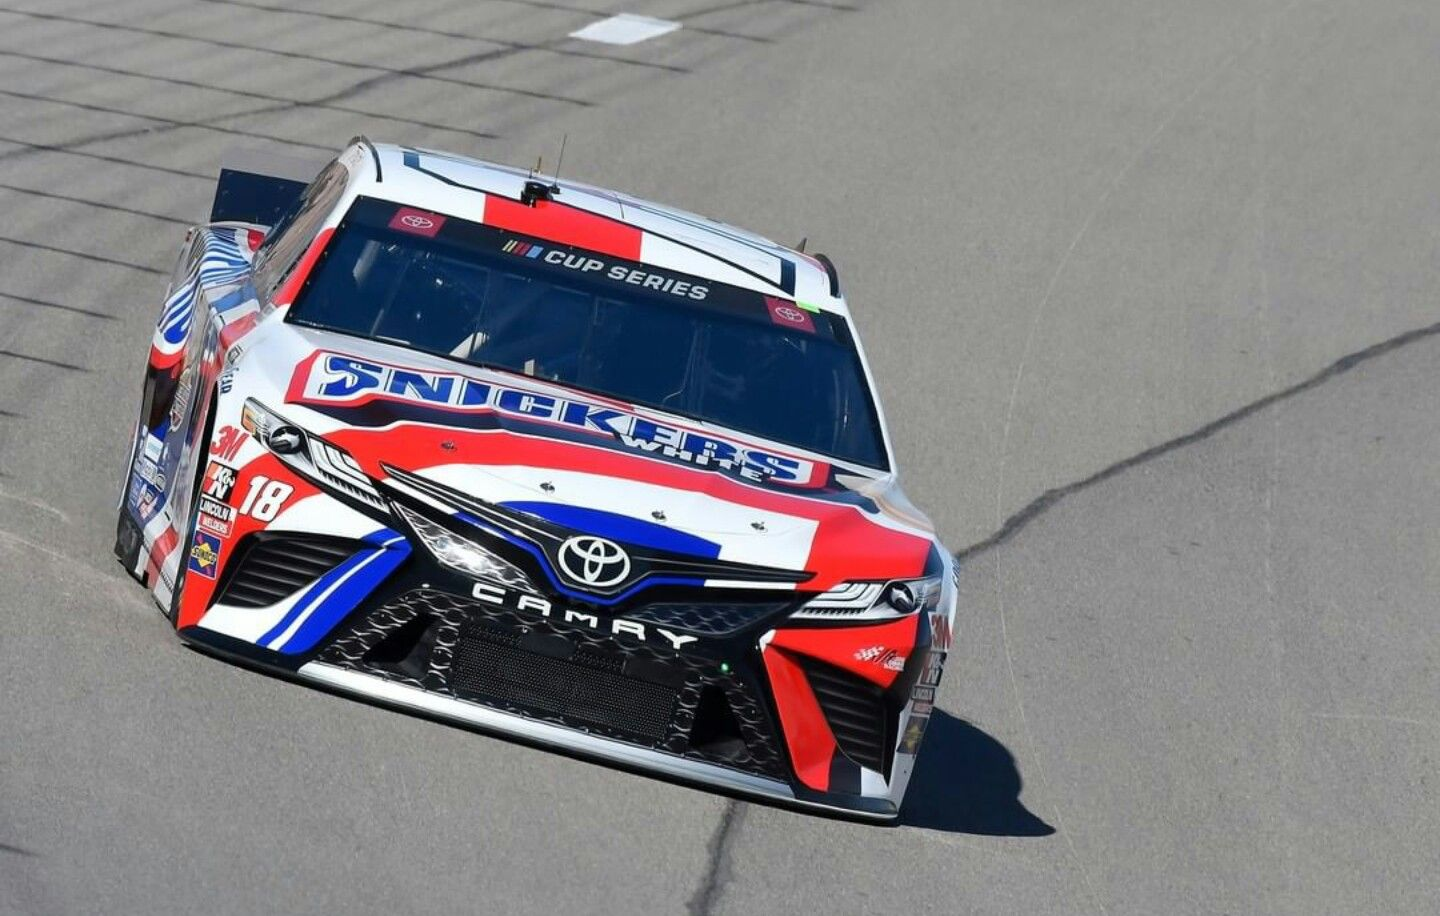 Pin by Mario Sotelo on Kyle Busch Motorsports in 2020